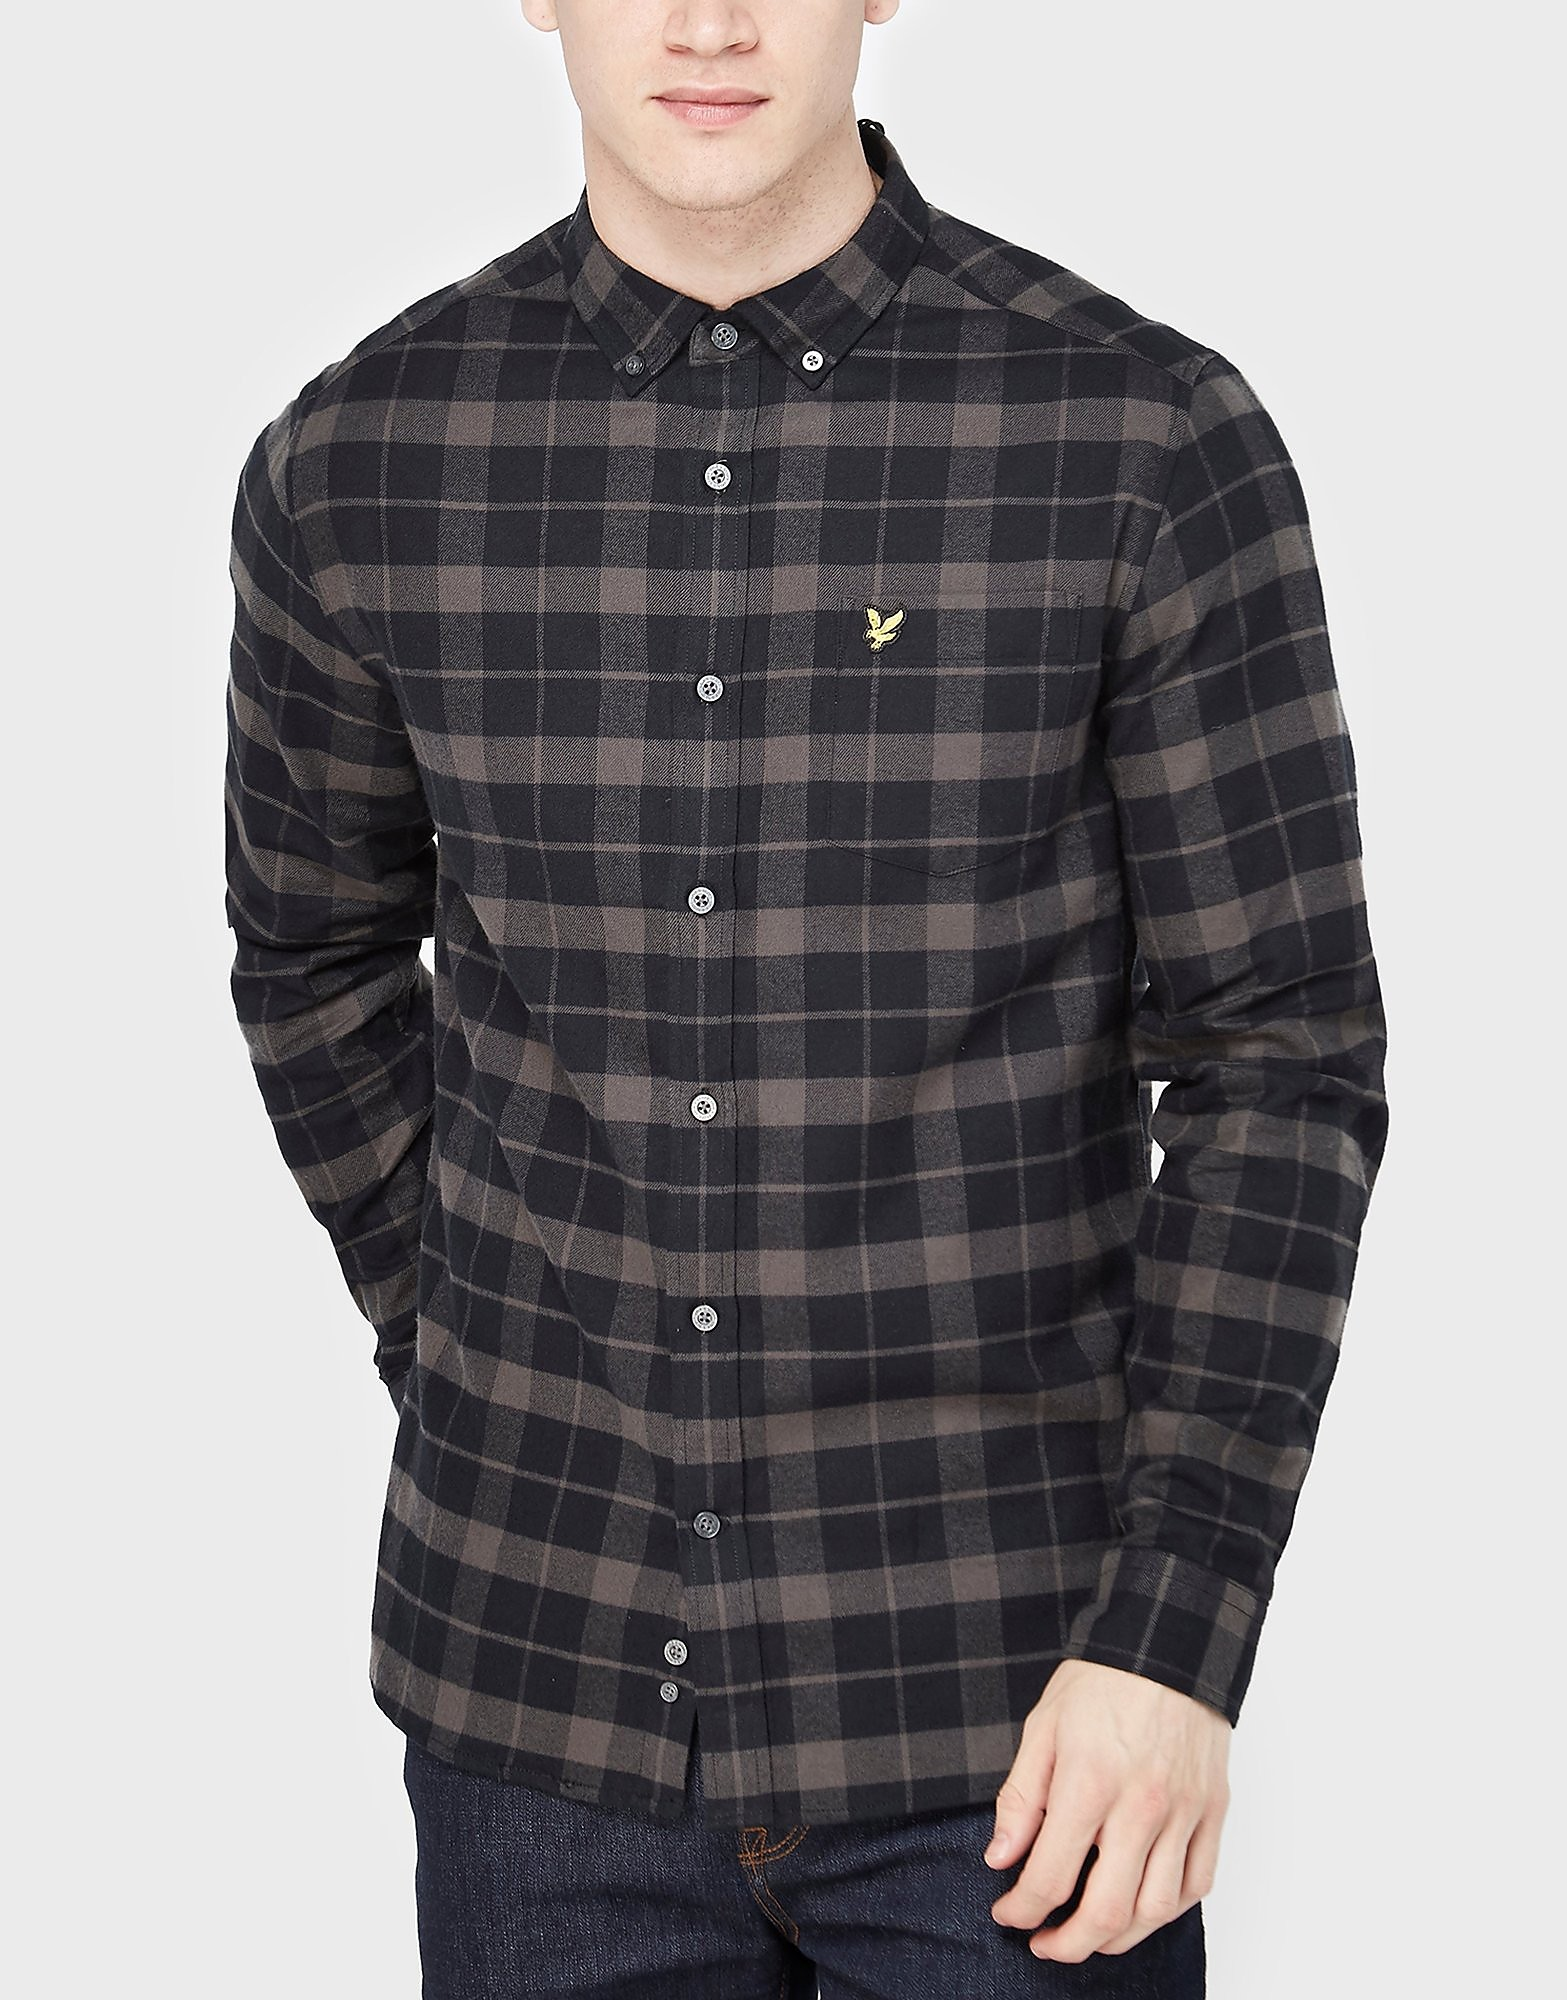 Lyle & Scott Flannel Check Shirt